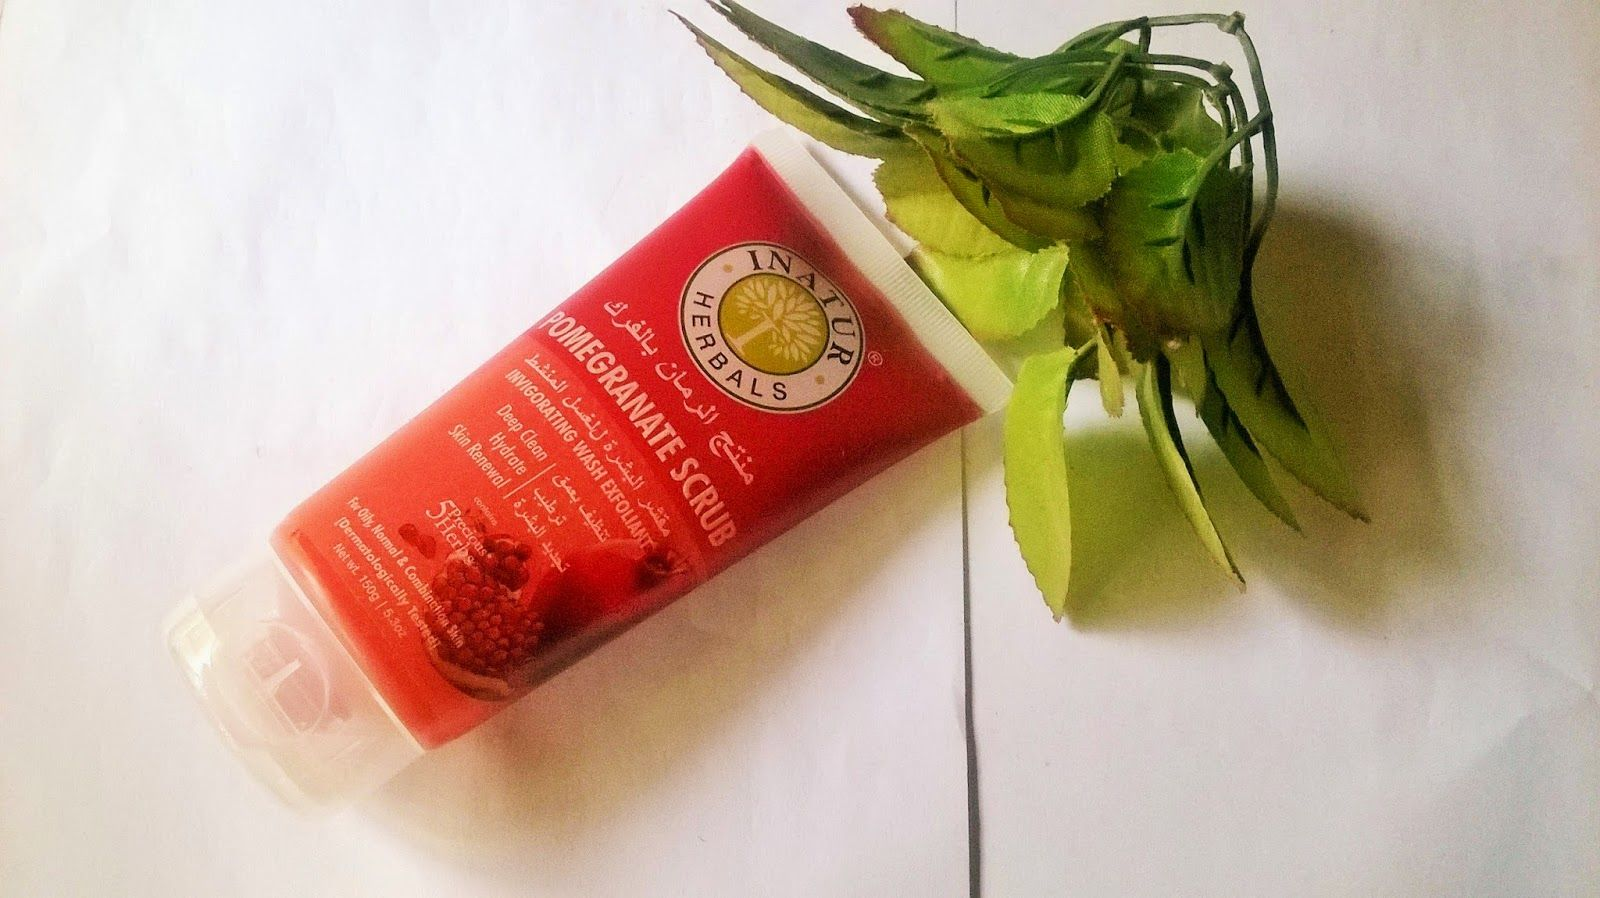 Beauty Beyond Inatur Herbals Pomegranate Scrub Review Pomegranate